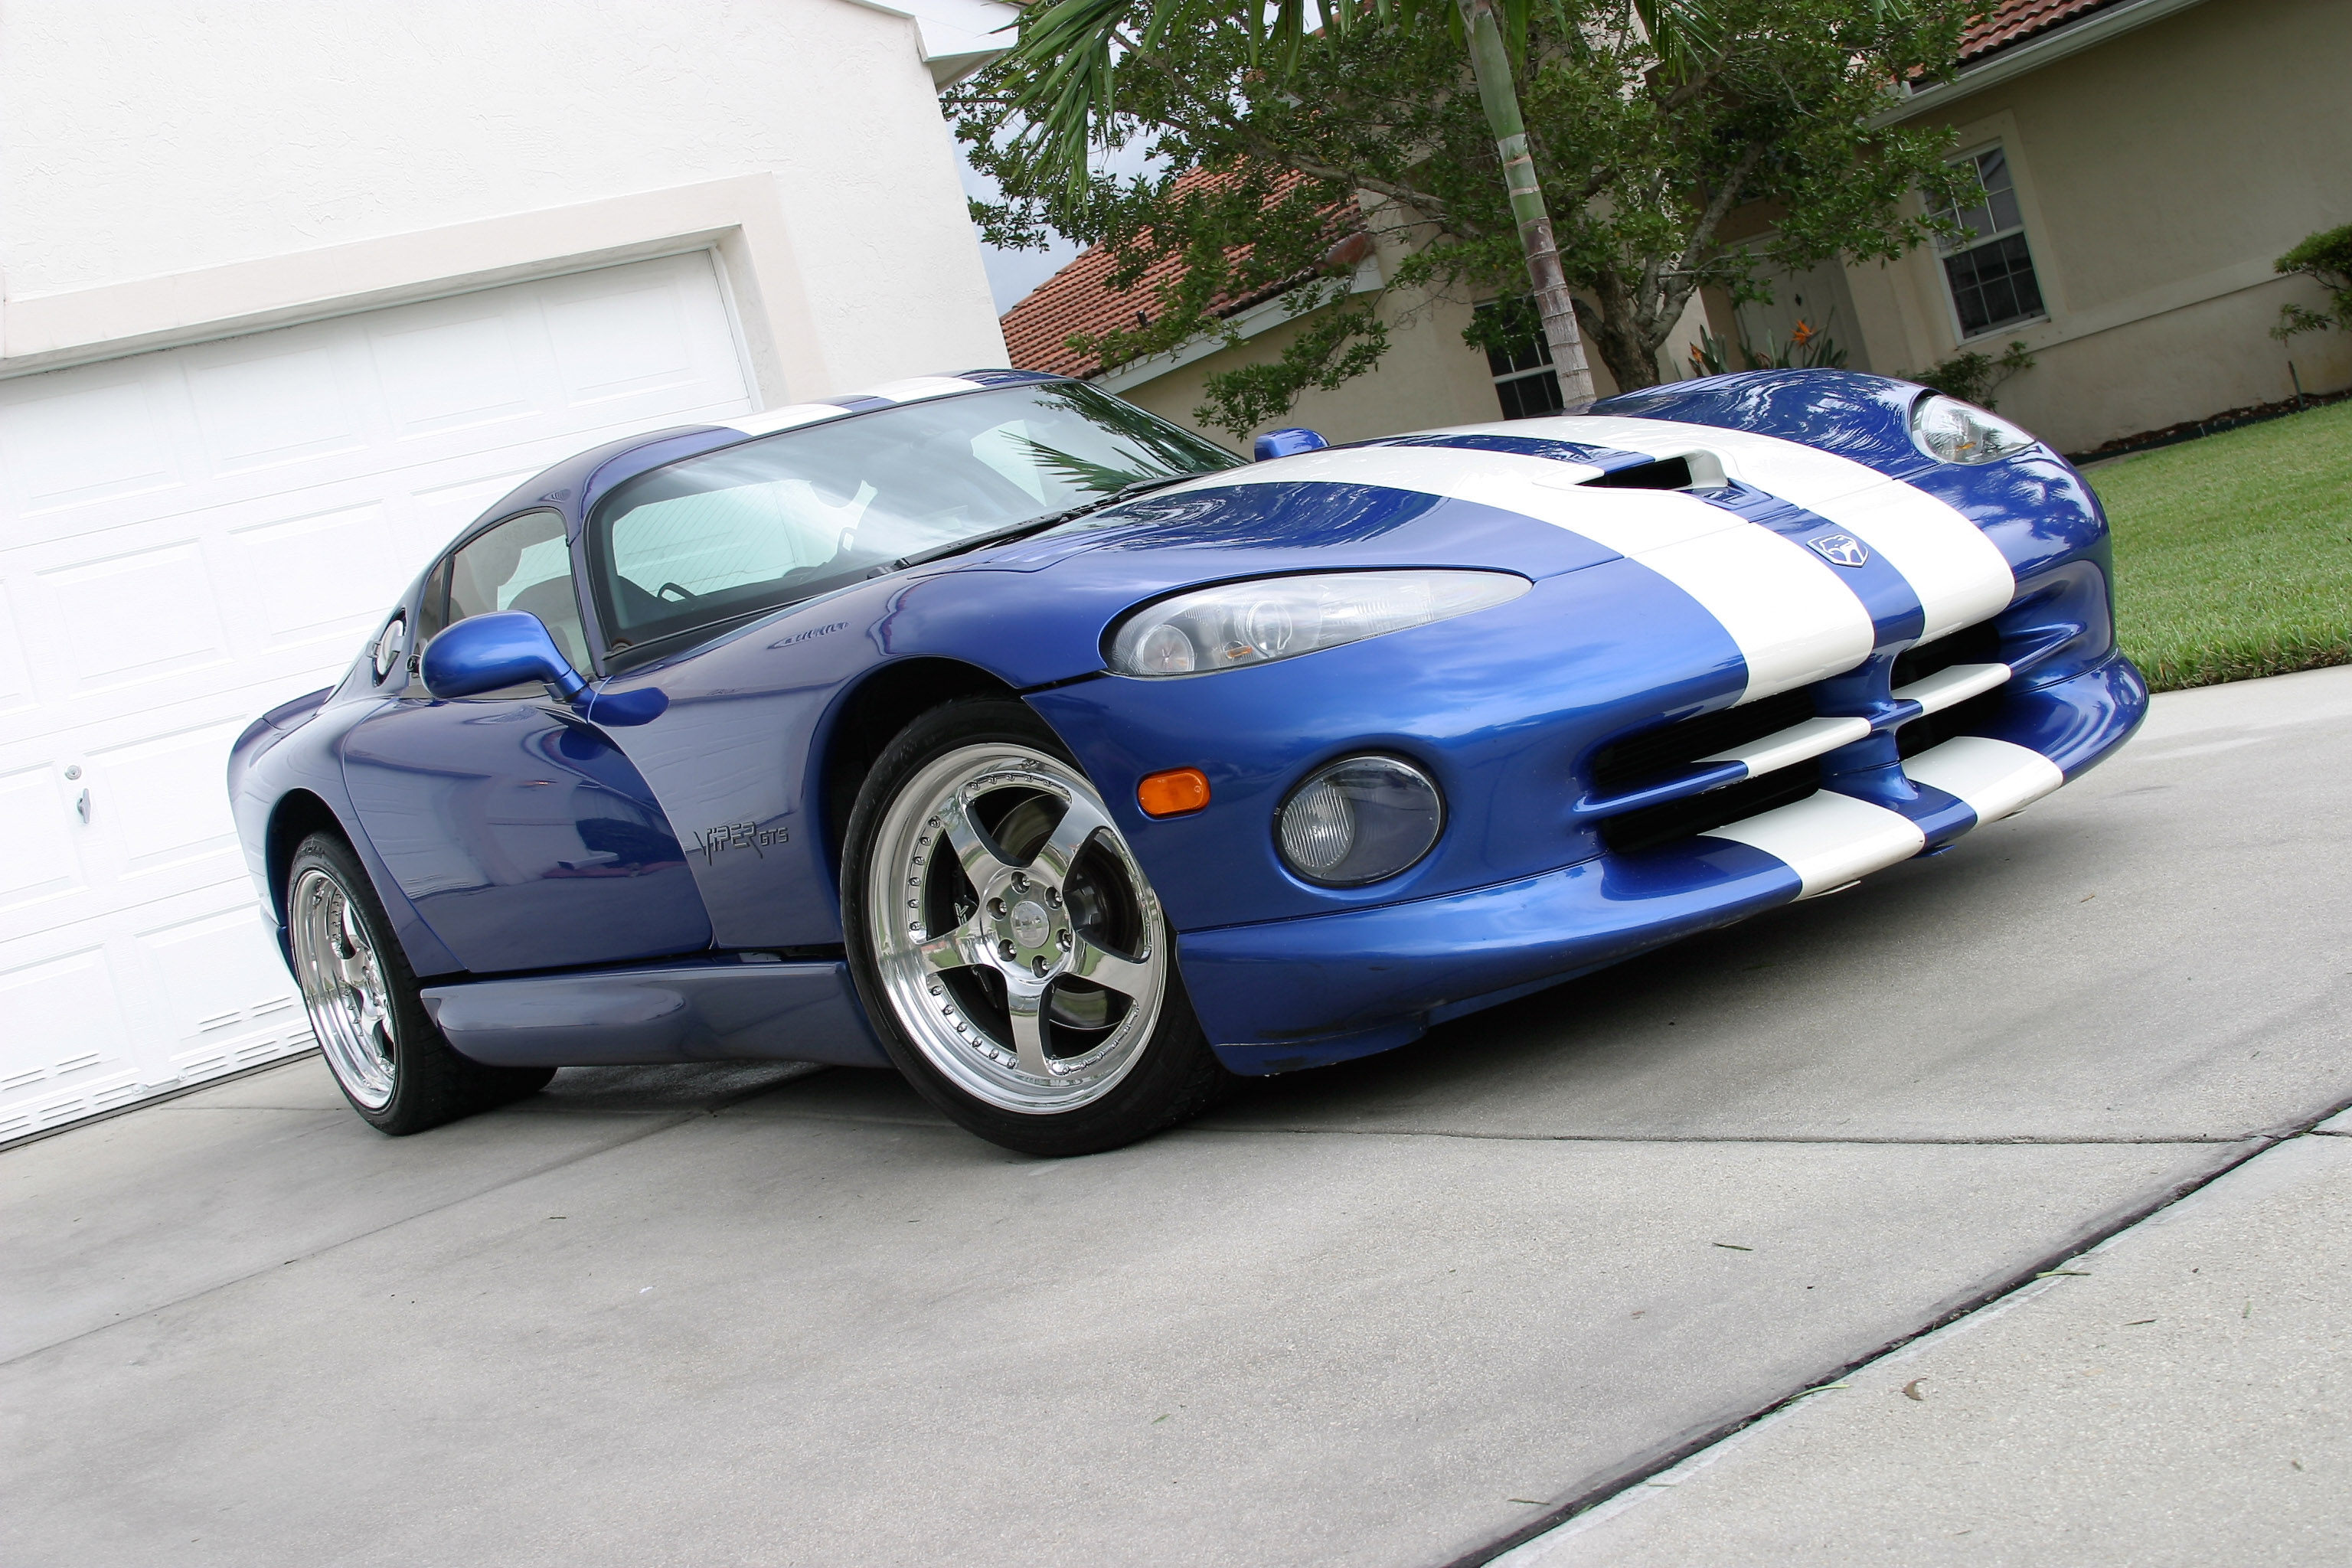 viper alley dodge viper forum srt viper how much to fix this car. Black Bedroom Furniture Sets. Home Design Ideas